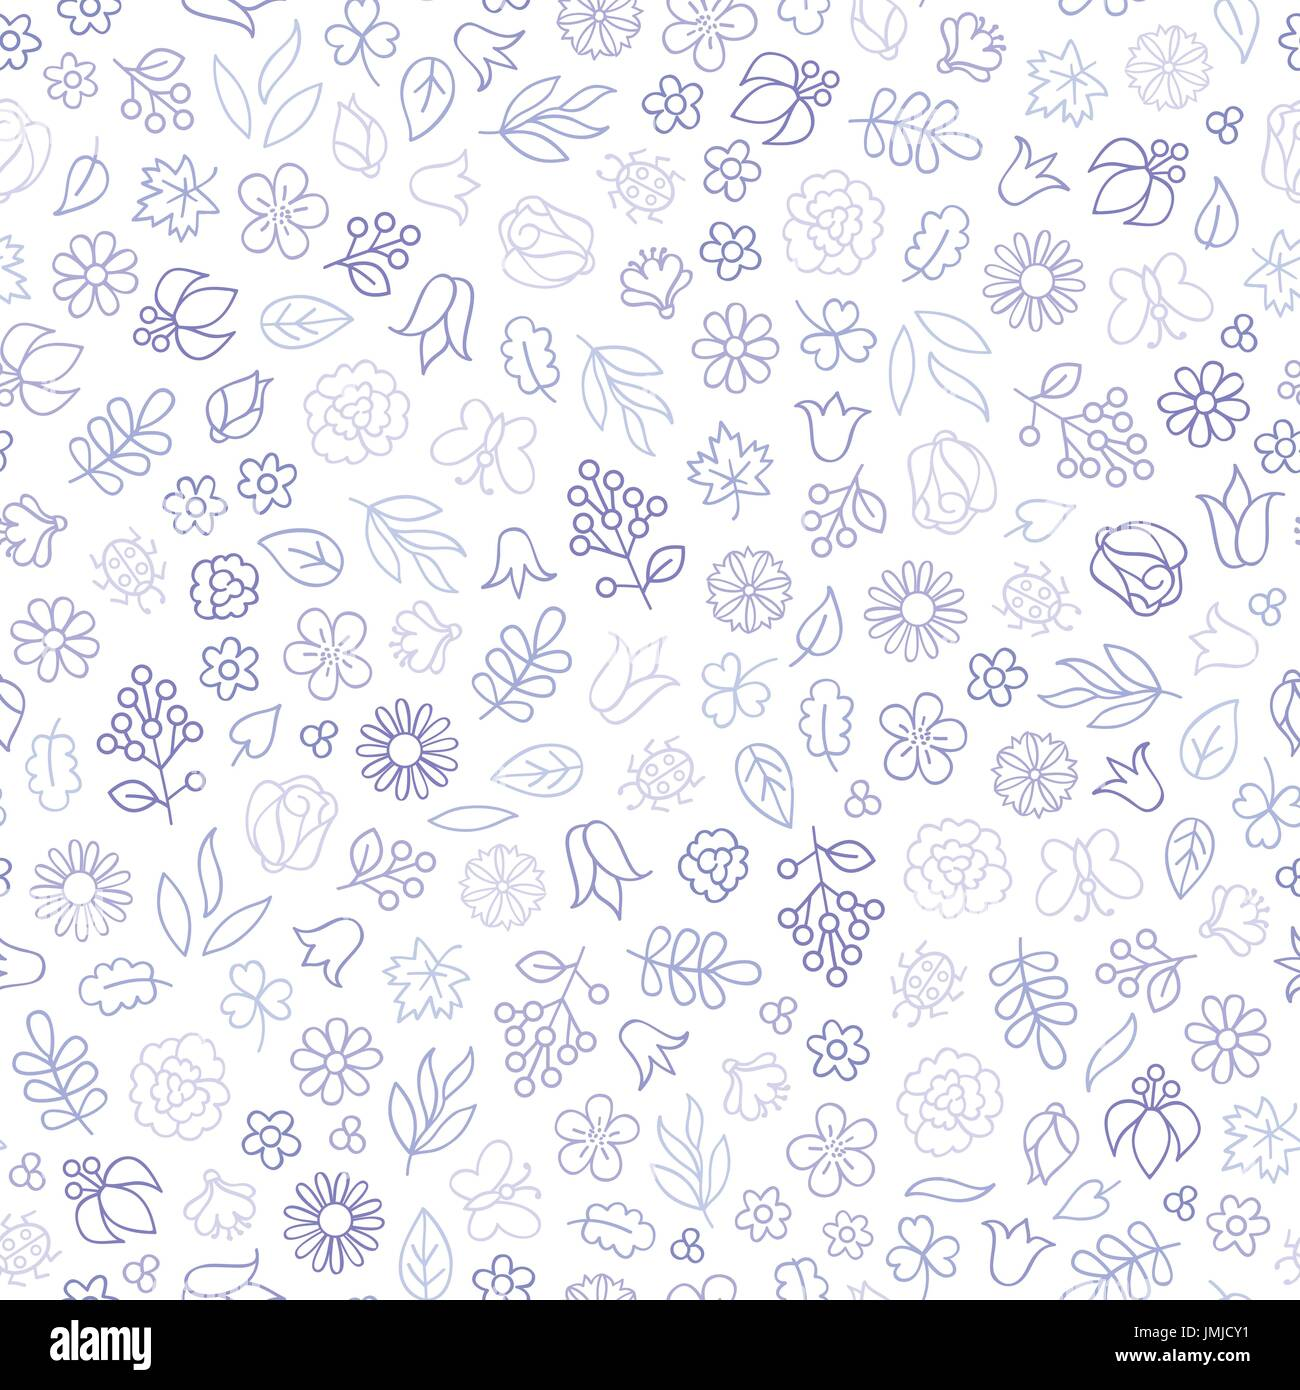 Flower icon seamless pattern. Floral leaves and flowers white texture. Nature background - Stock Vector